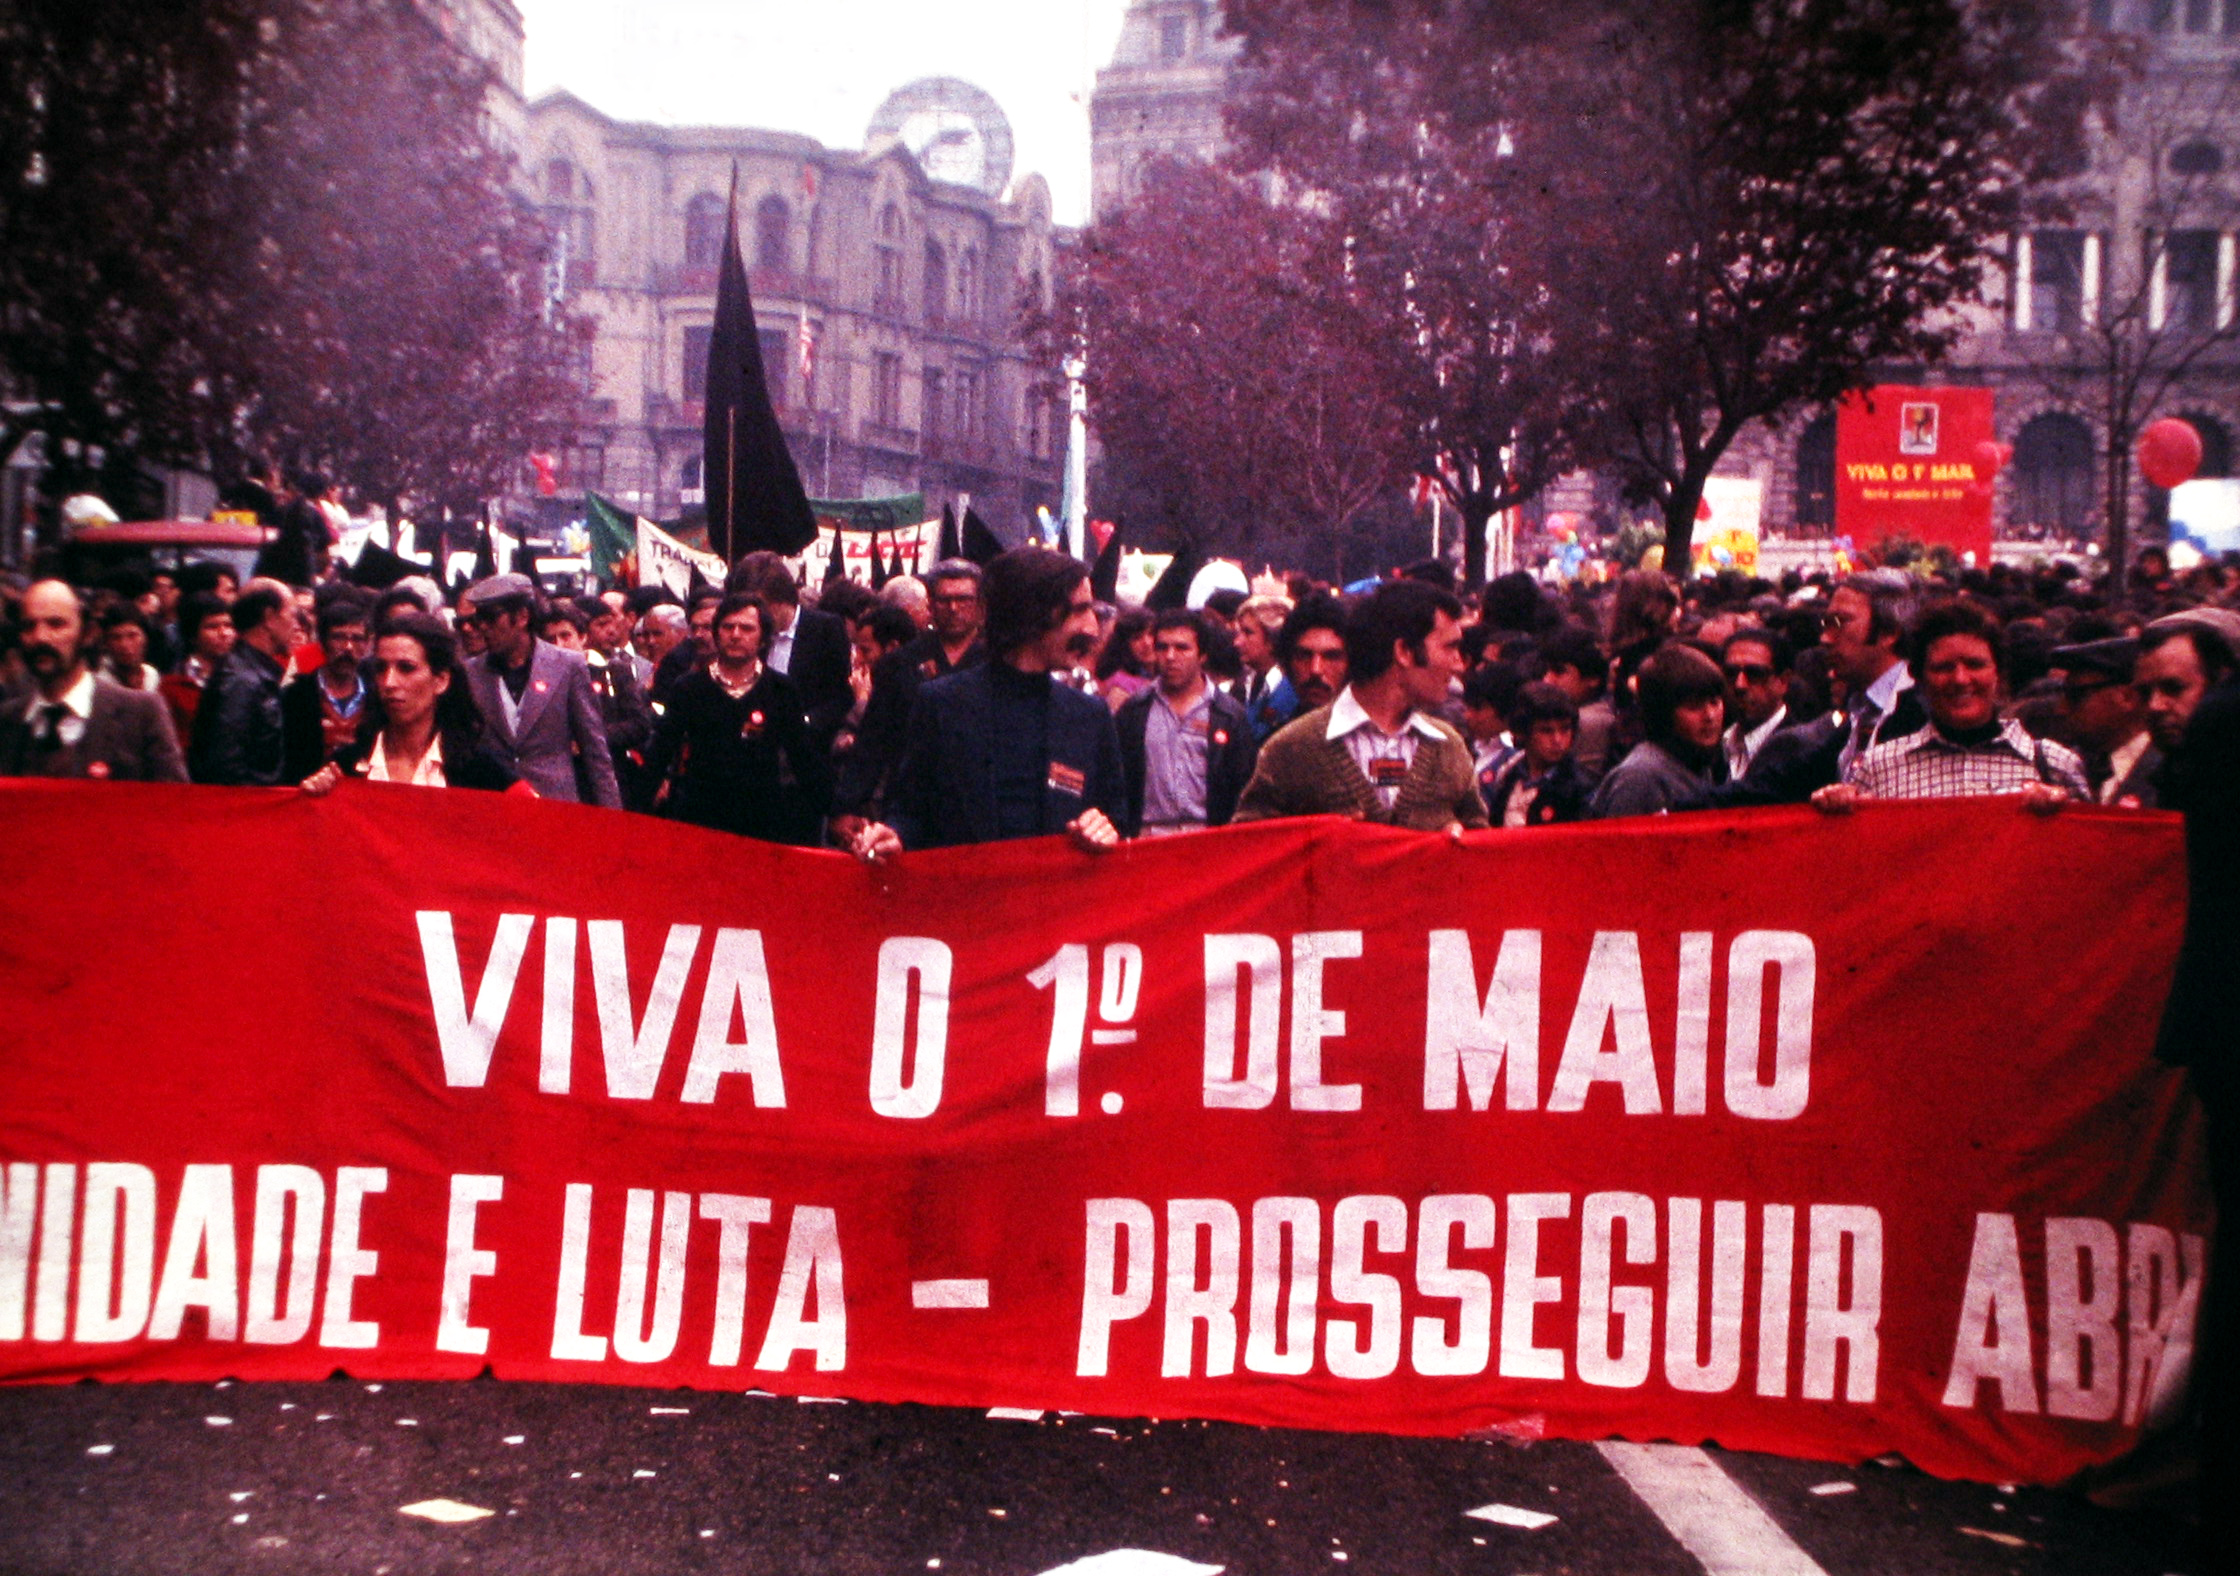 http://upload.wikimedia.org/wikipedia/commons/f/fe/1%C2%BA_Maio_1980_Porto_by_Henrique_Matos.jpg